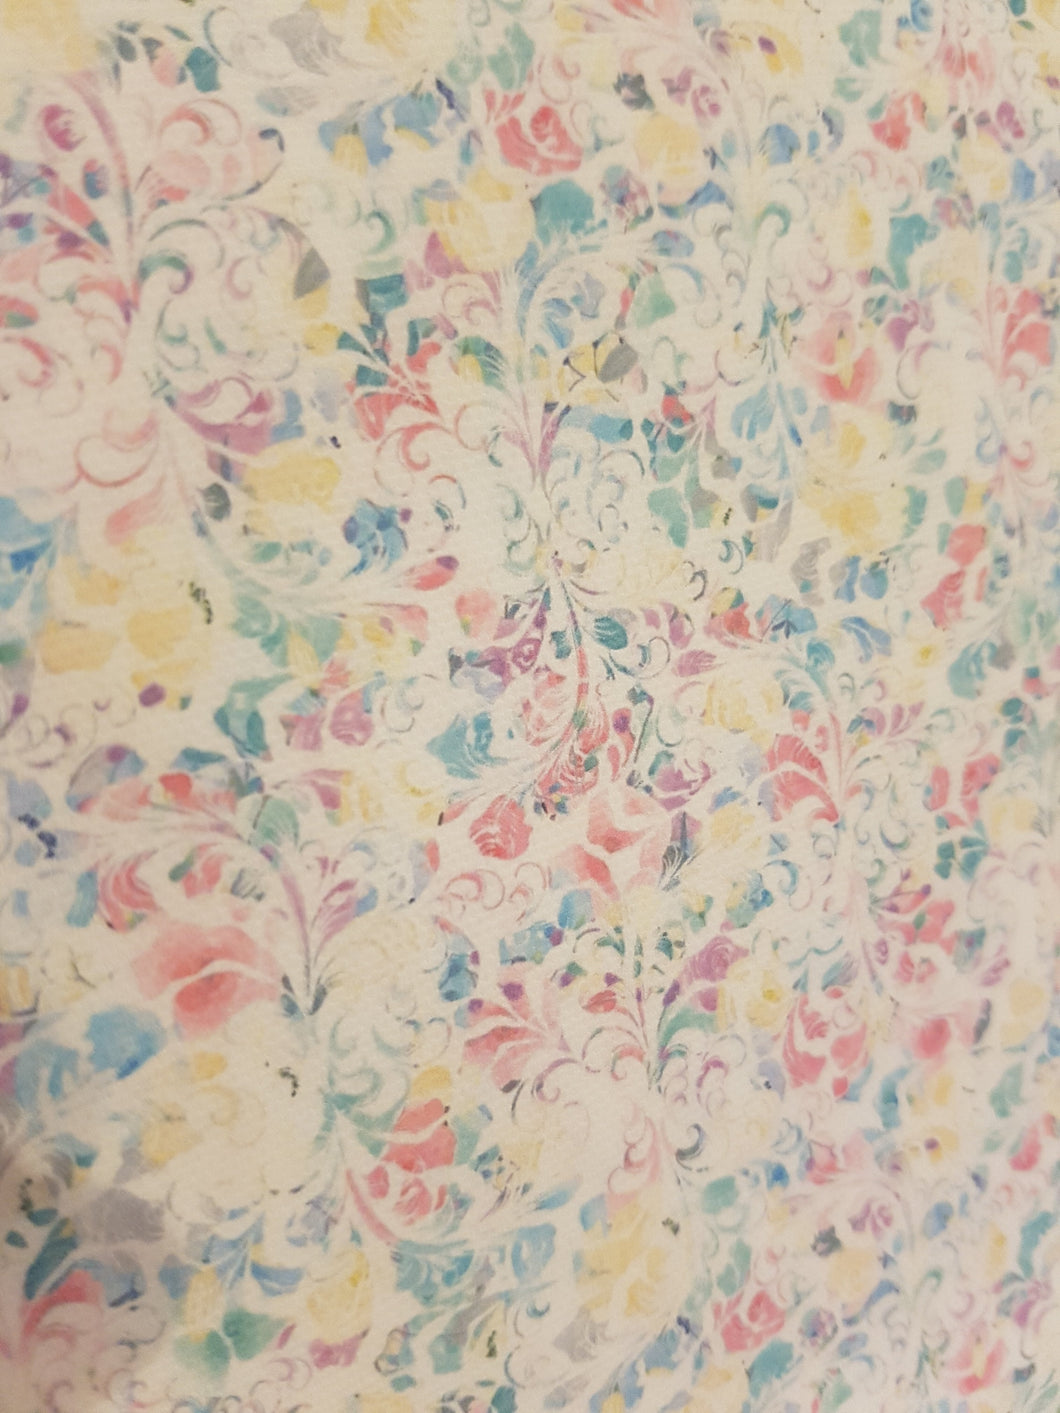 Pastel Patterned Fabric 035 Pixie Dot Bow Supplies